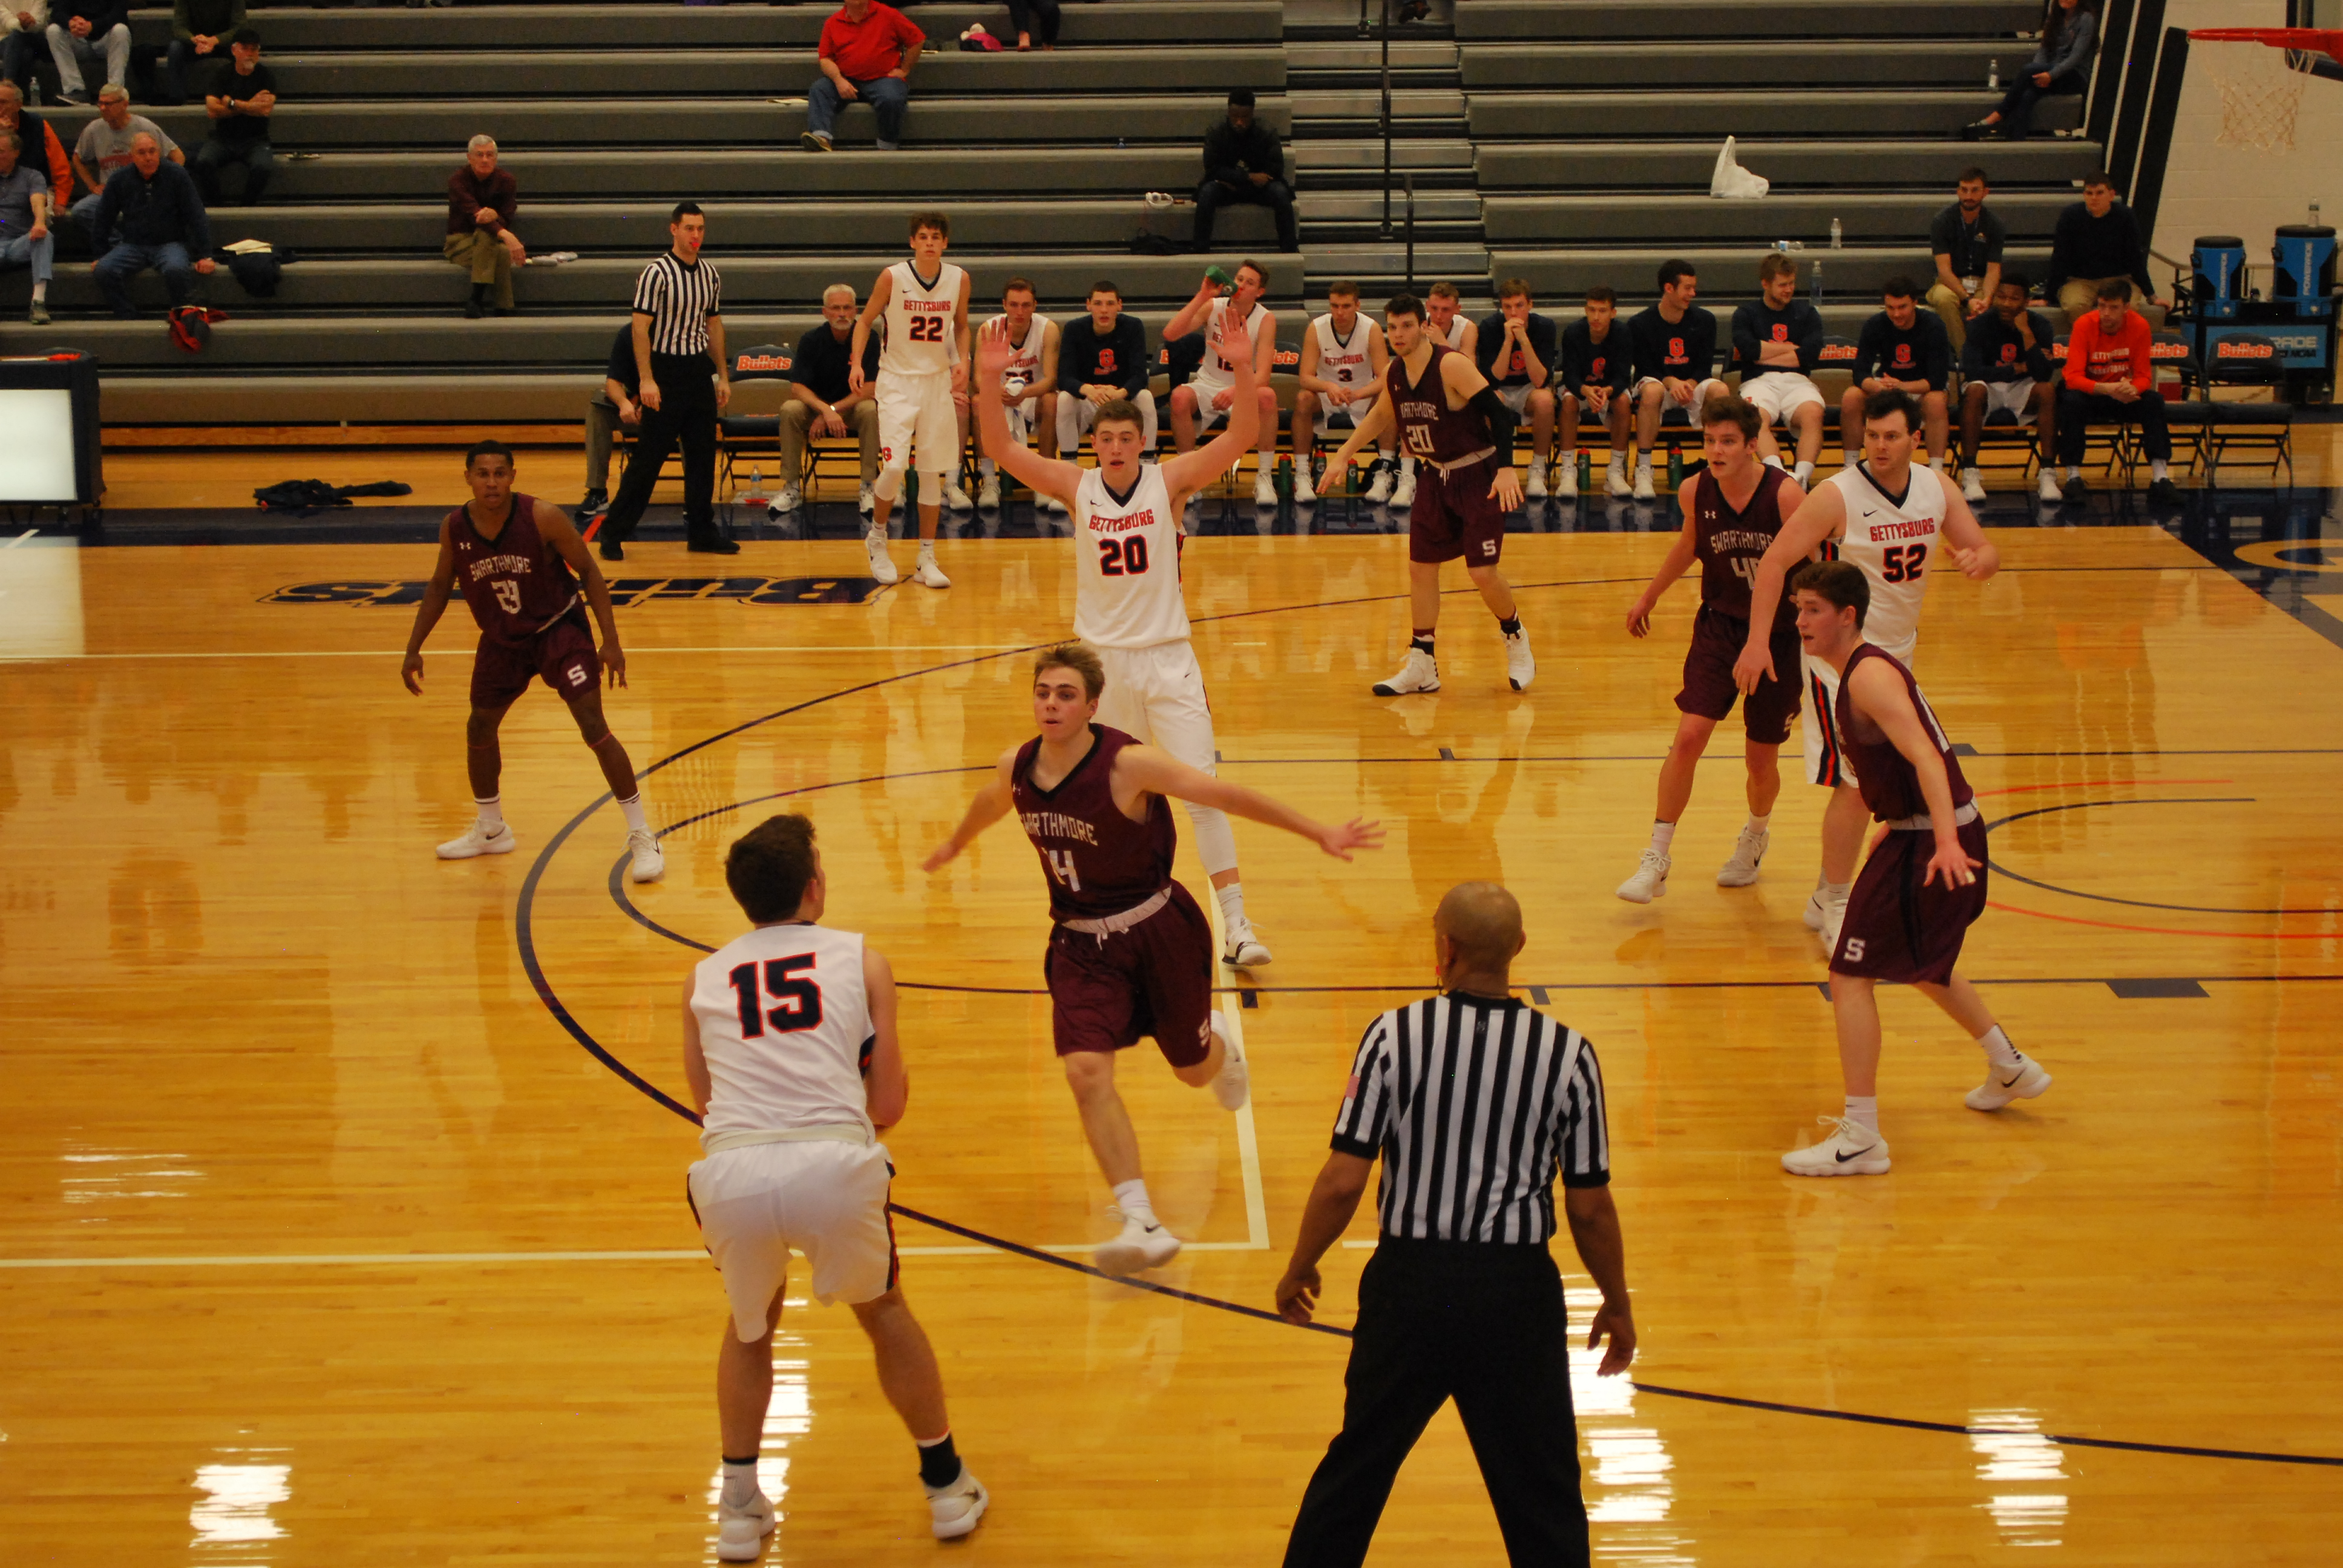 Nick Lord prepares to shoot; he made four of his first five 3-point shots against Swarthmore (Photo Benjamin Pontz / The Gettysburgian)